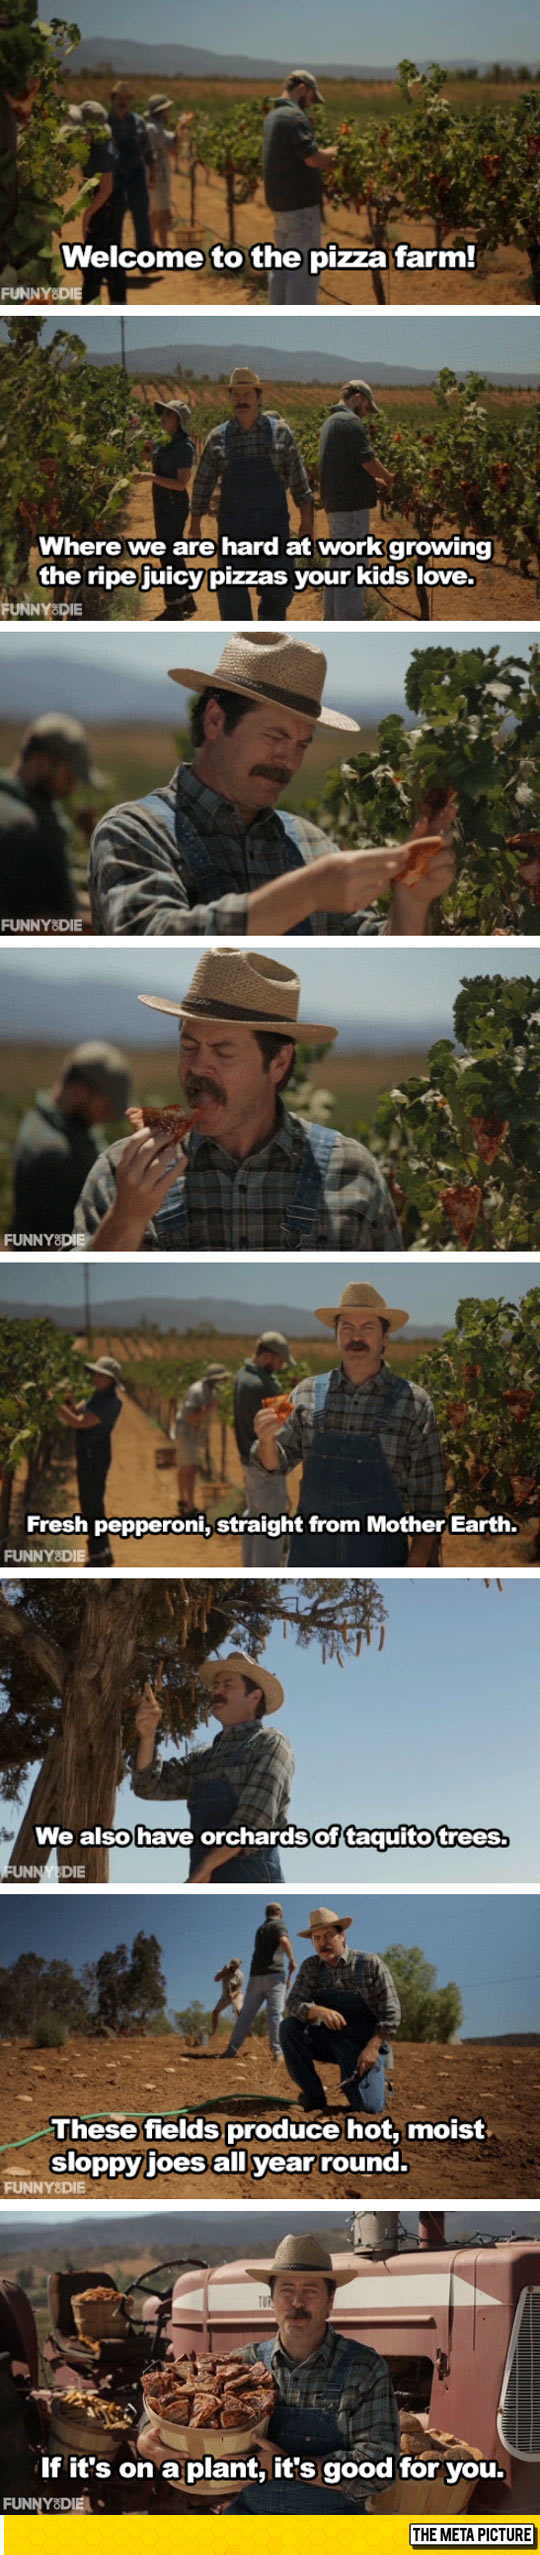 Nick Offerman Shows Off His Pizza Farm